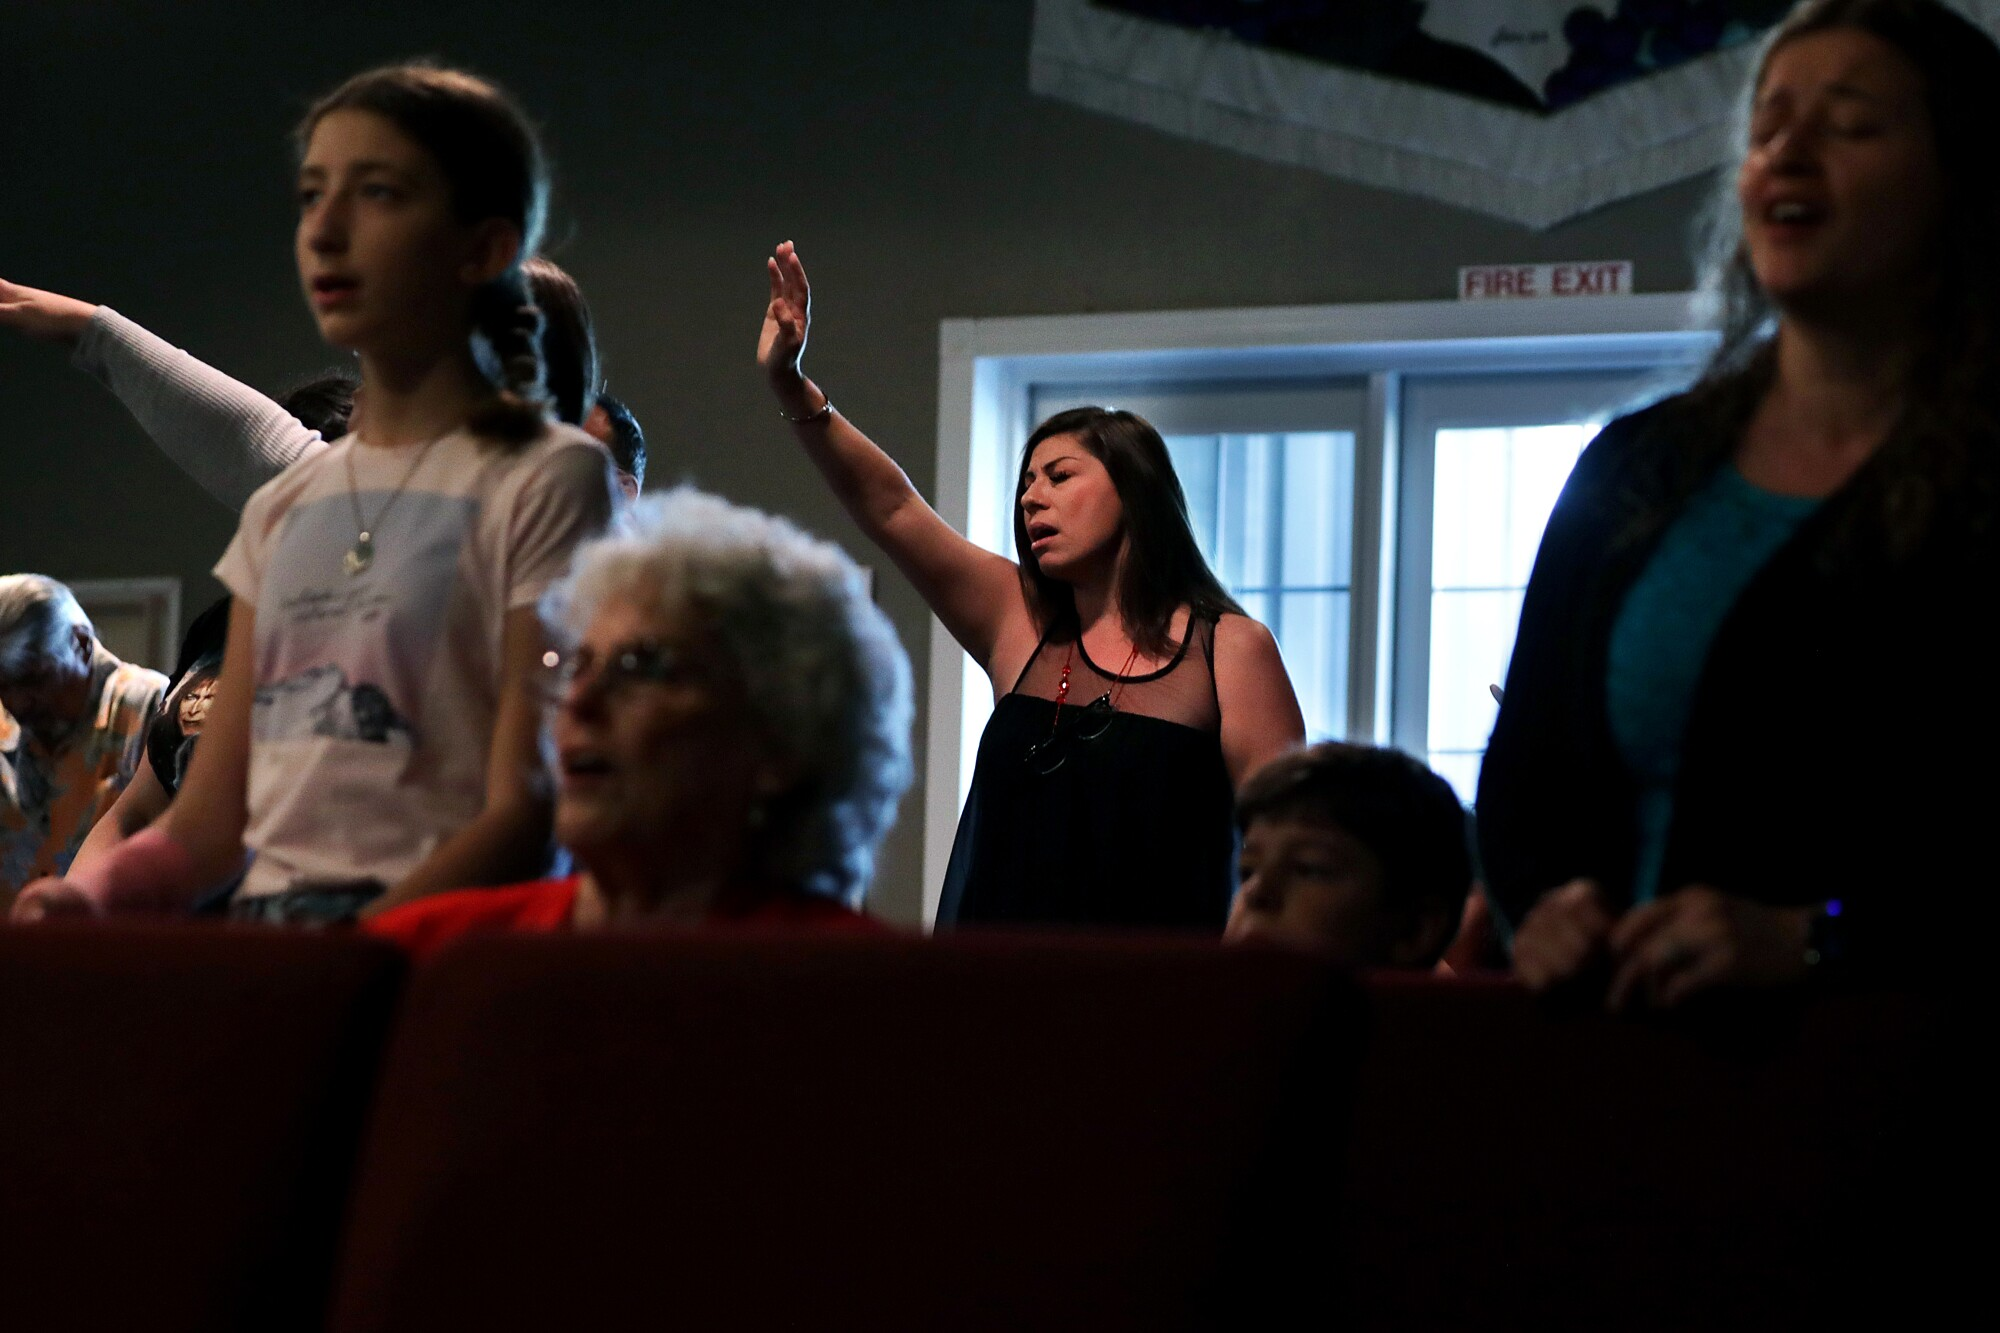 Worshipers, including Cindy Meddinna, center, gather for a service at Bundy Canyon Christian Church in Wildomar, Calif.